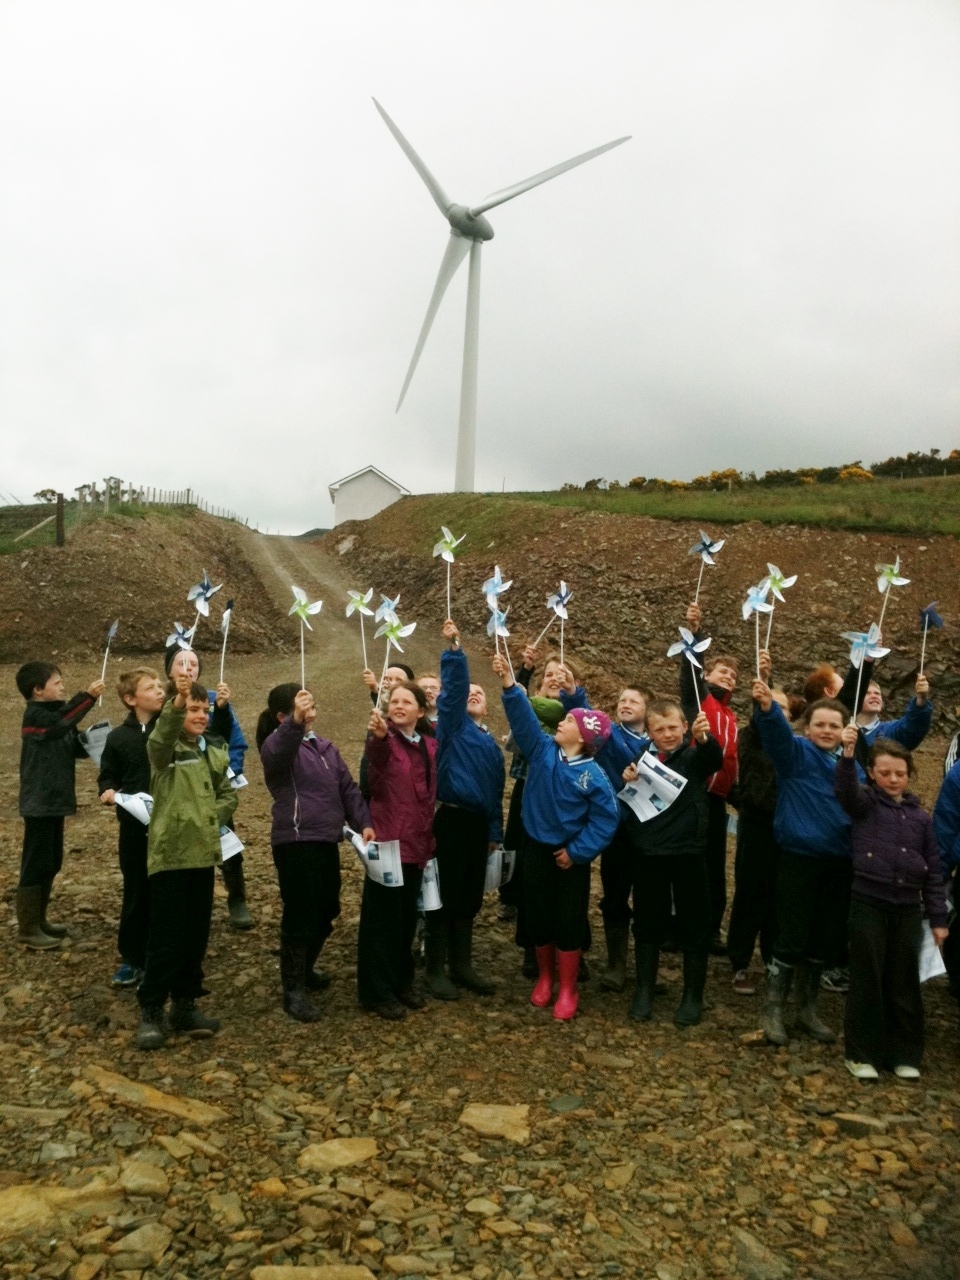 REScoop.eu: citizen energy cooperatives have transformed the energy market in many countries